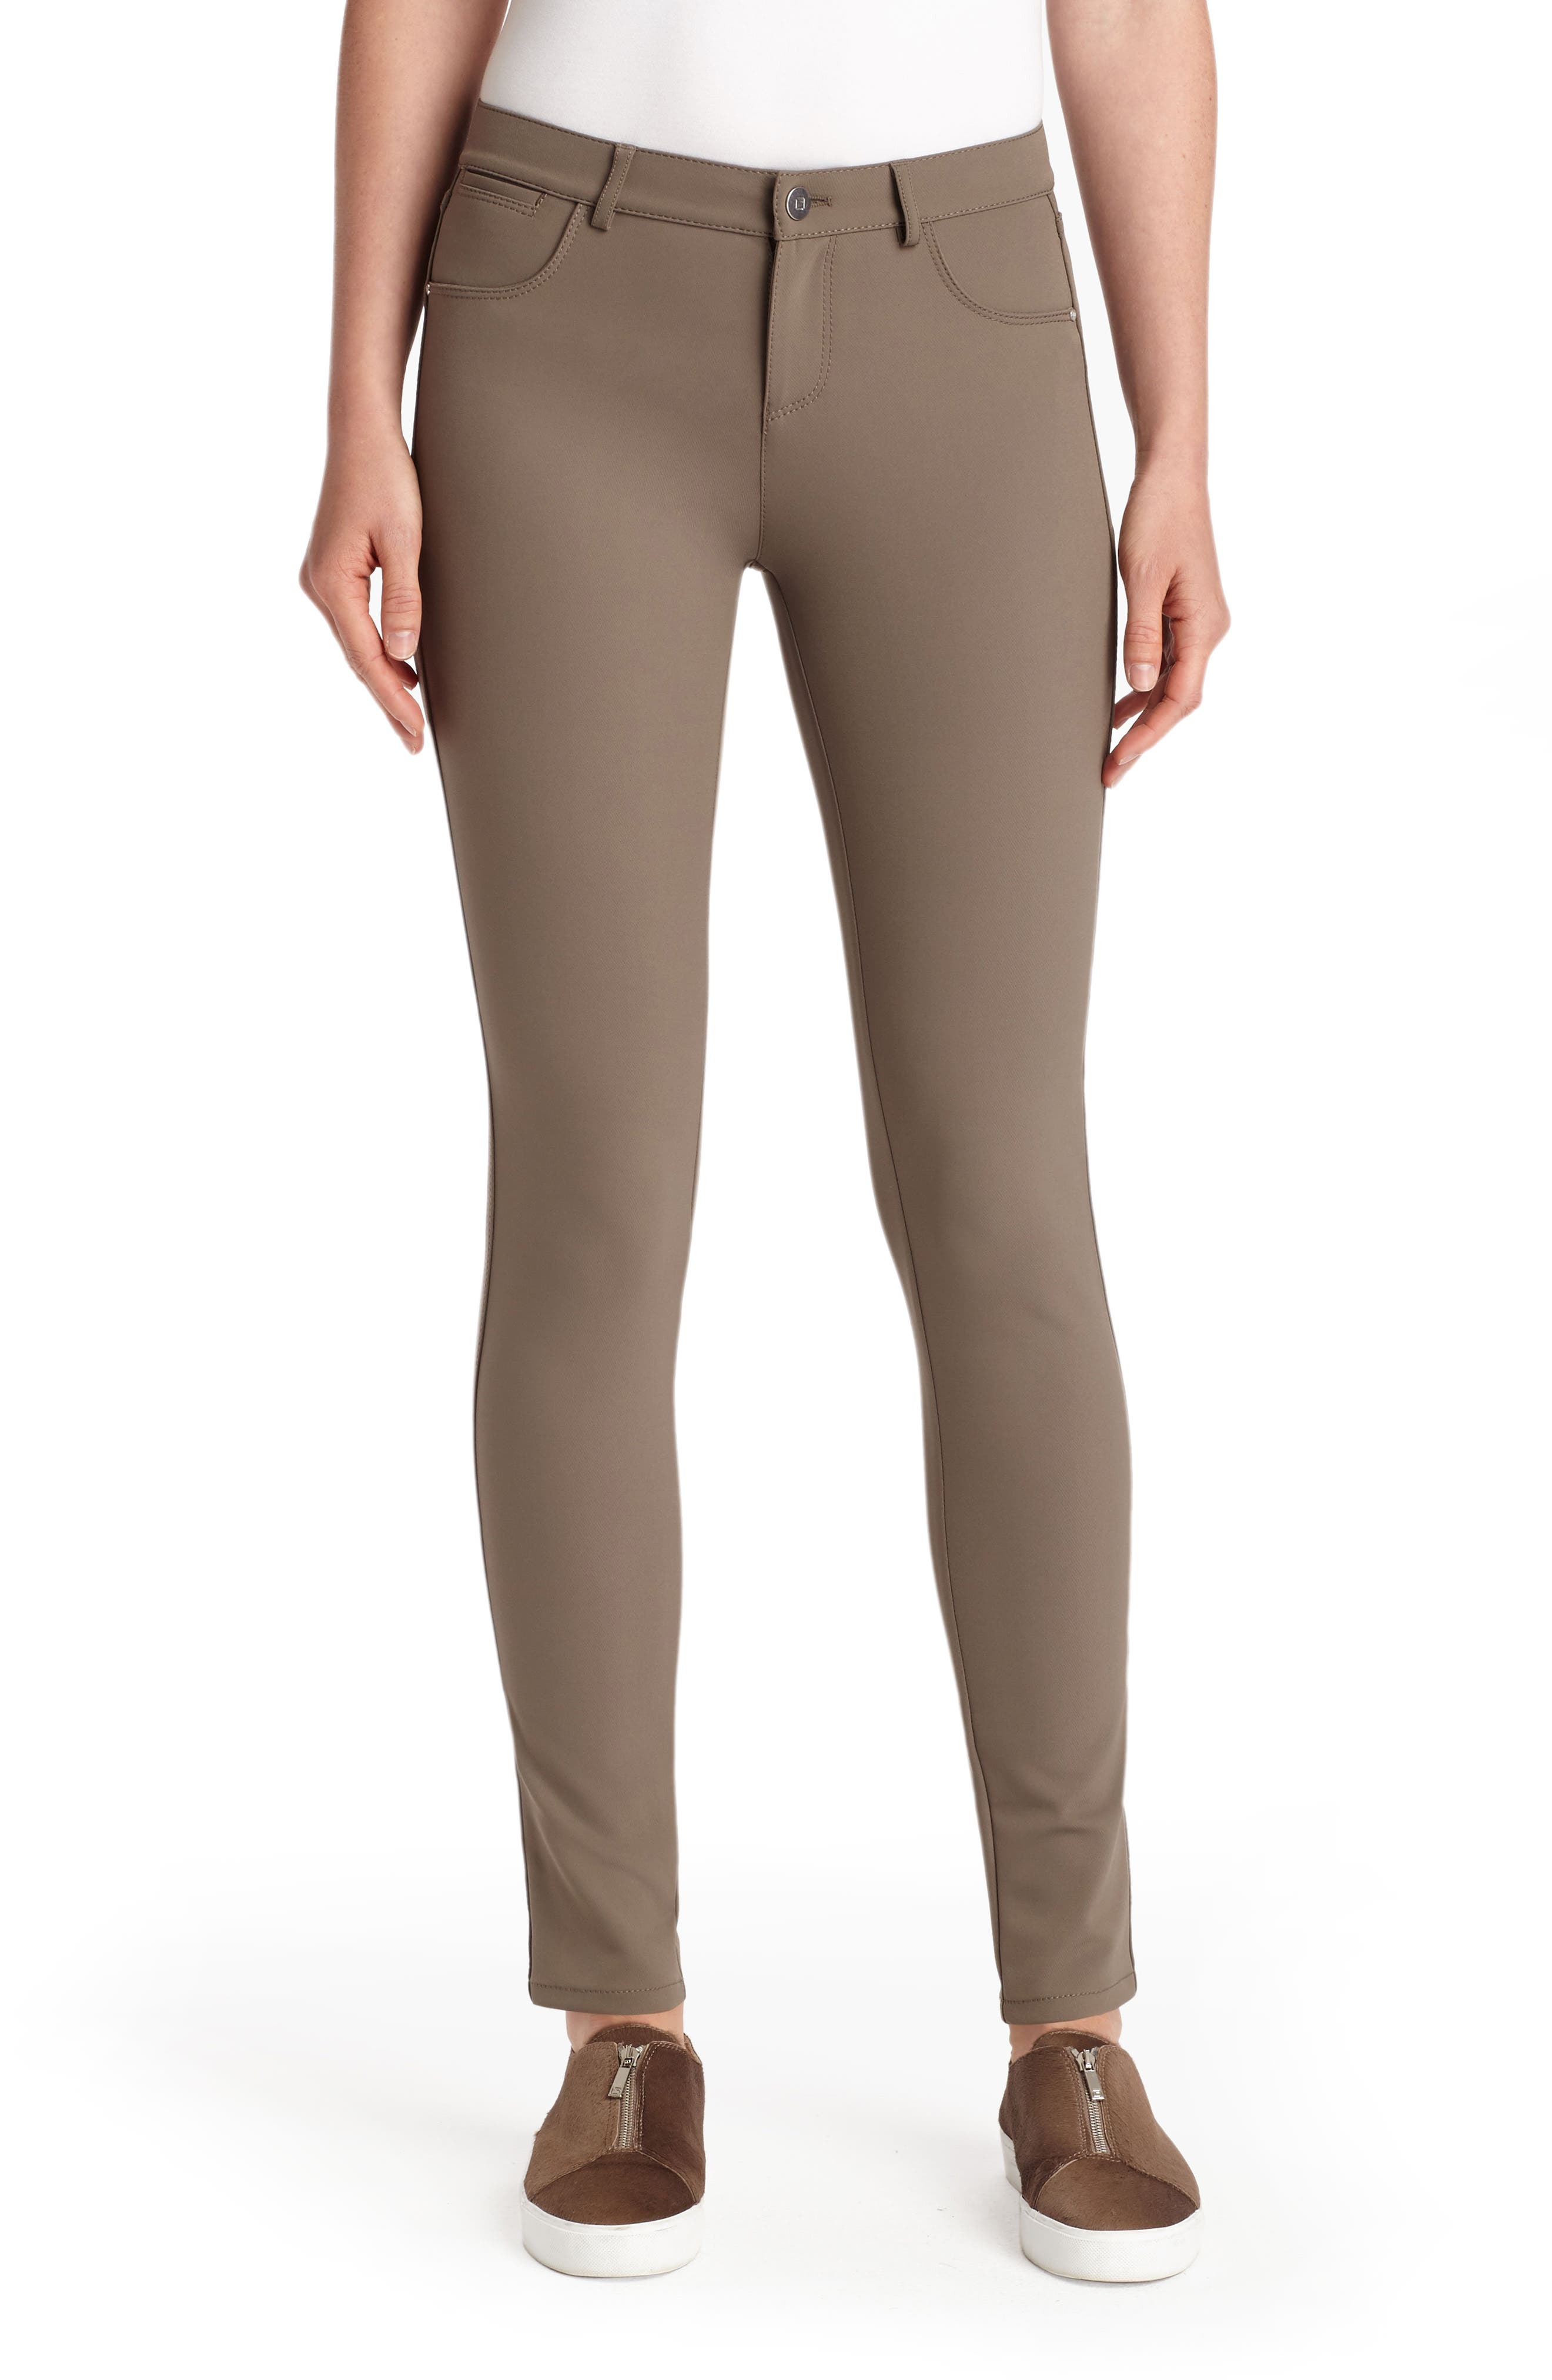 Mercer Acclaimed Stretch Mid-Rise Skinny Jeans in Nougat